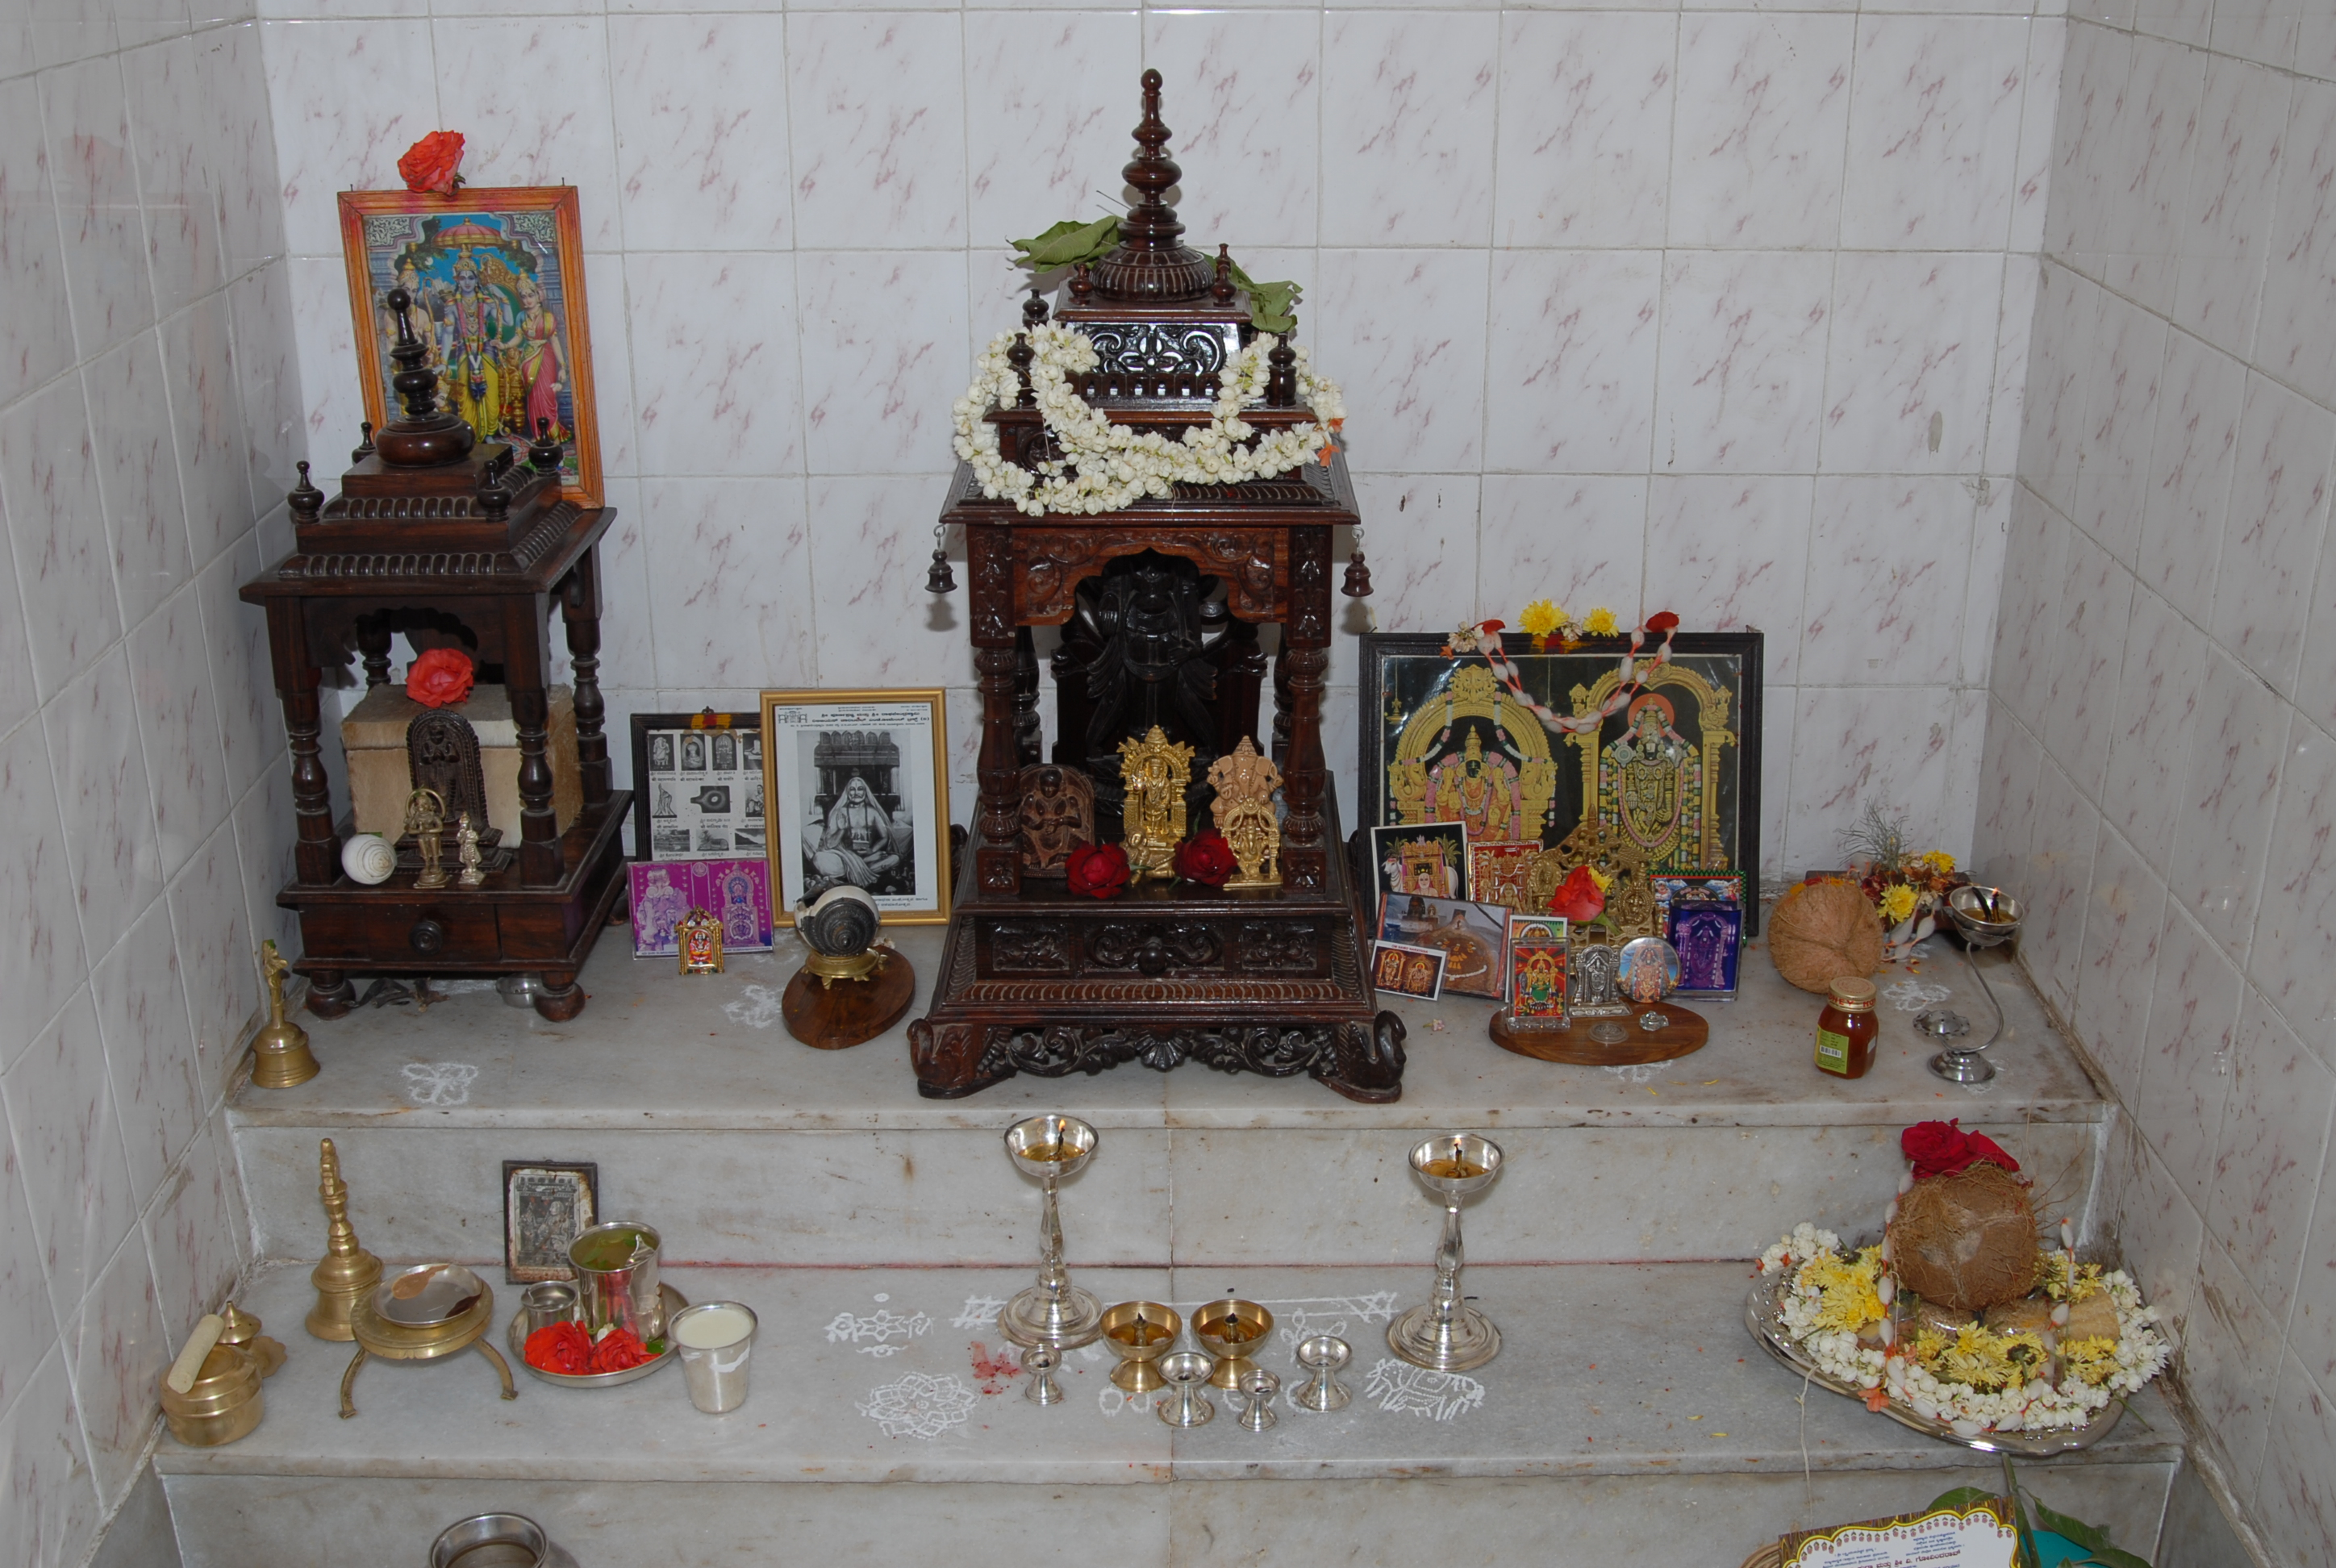 Pooja Room On The Wall